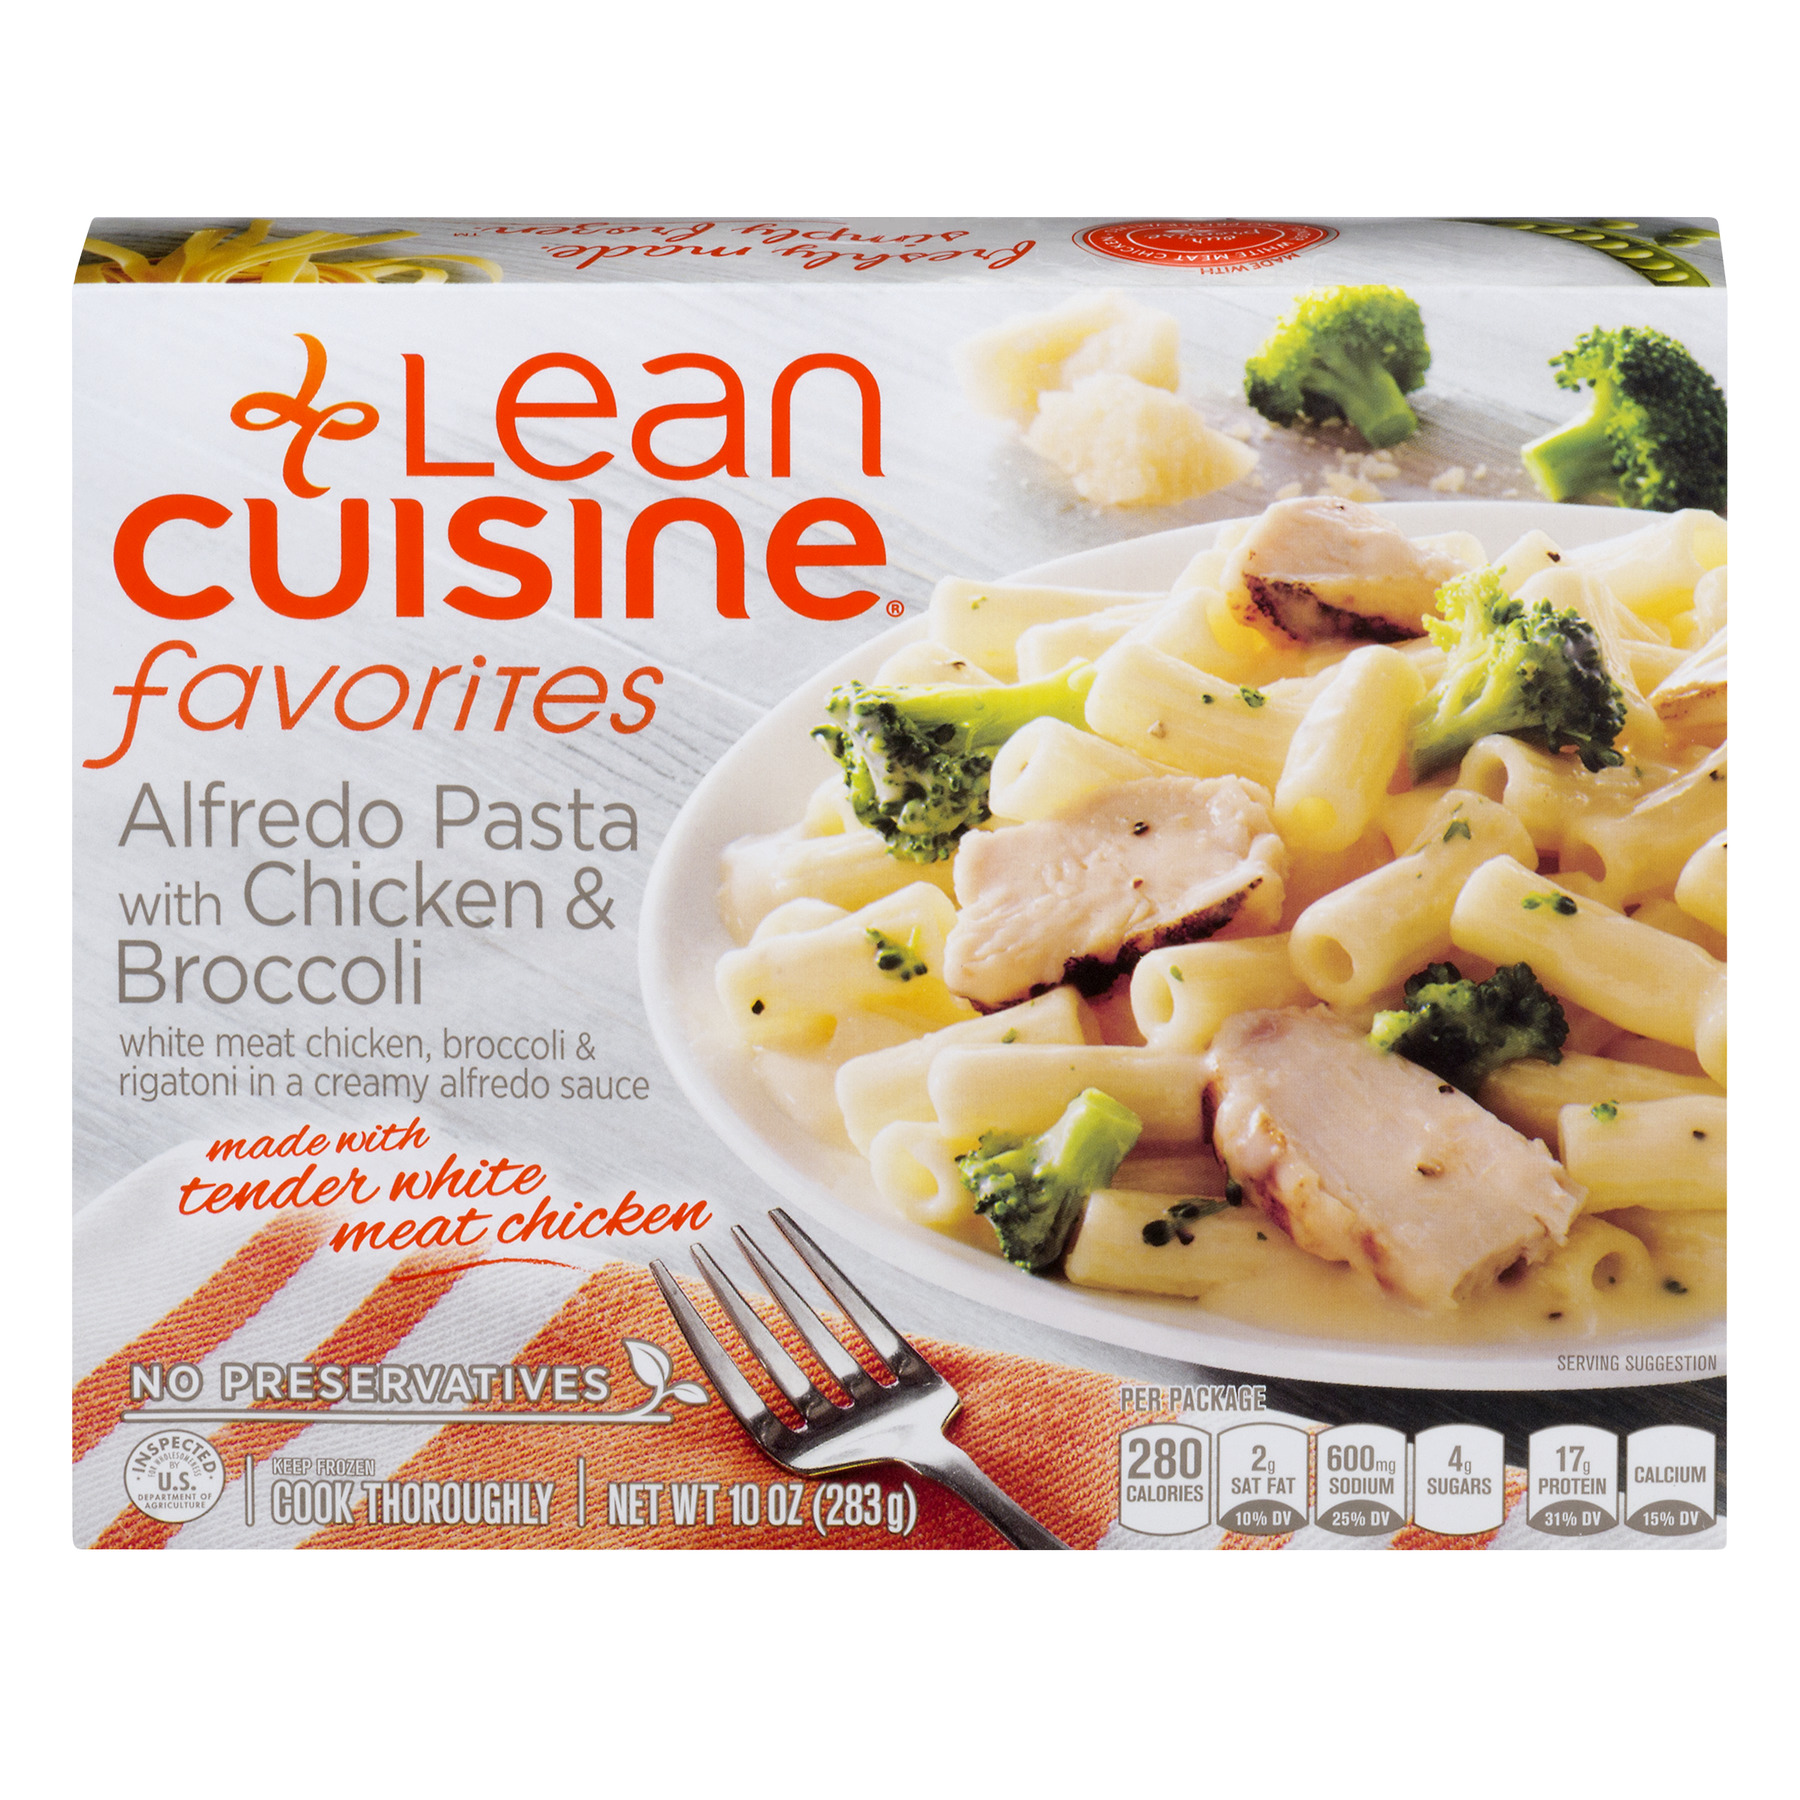 Lean Cuisine Favorites Alfredo Pasta with Chicken & Broccoli, 10.0 OZ